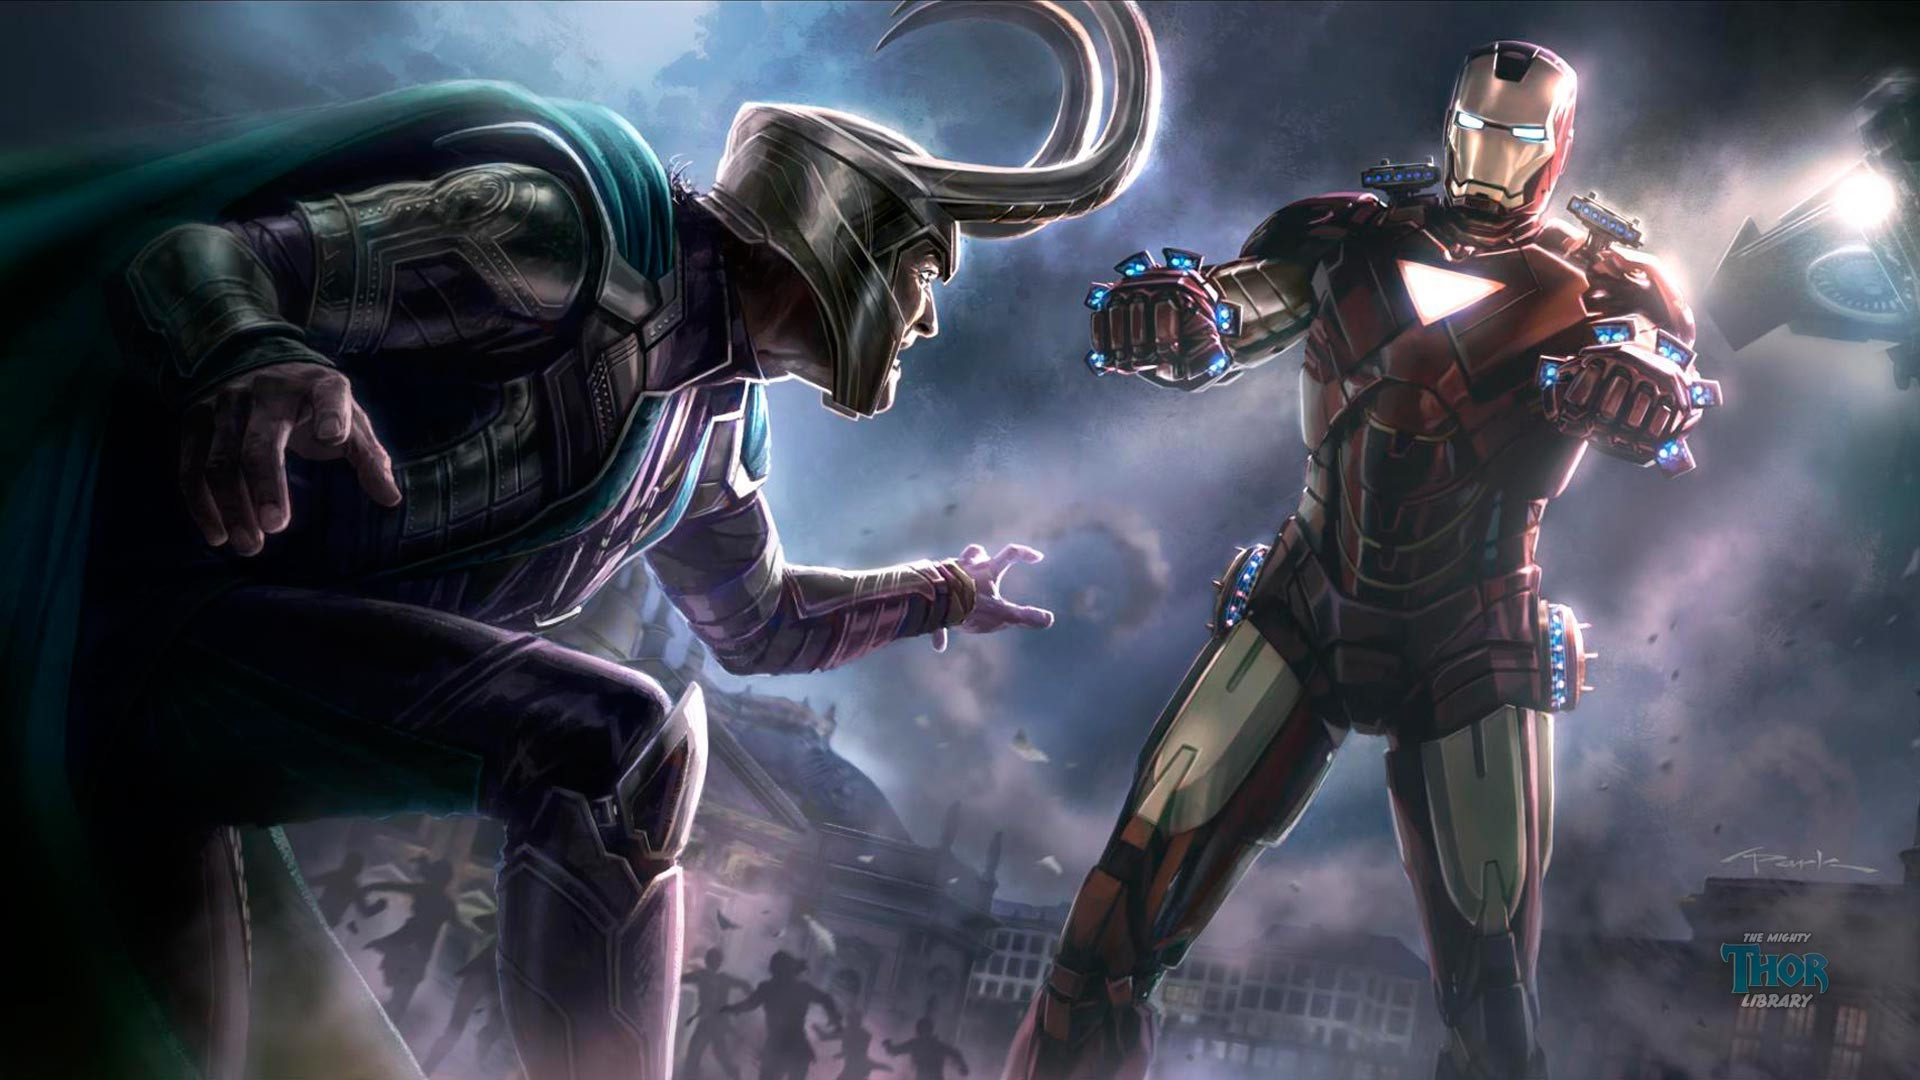 Iron Man Wallpapers (Image Gallery) – HD wallpapers 1080p